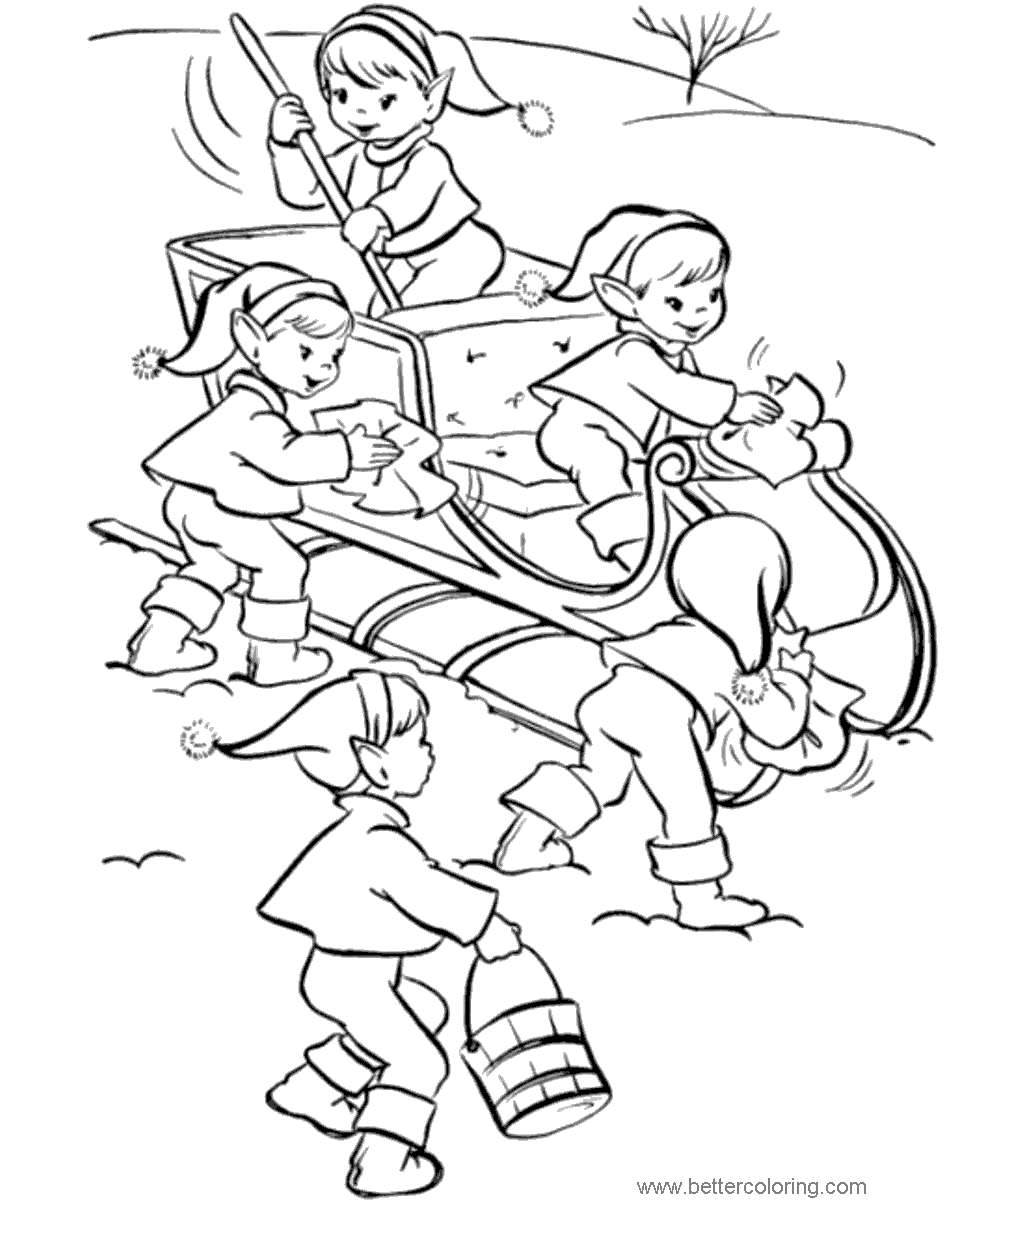 Free Evles Sleighing Coloring Pages printable